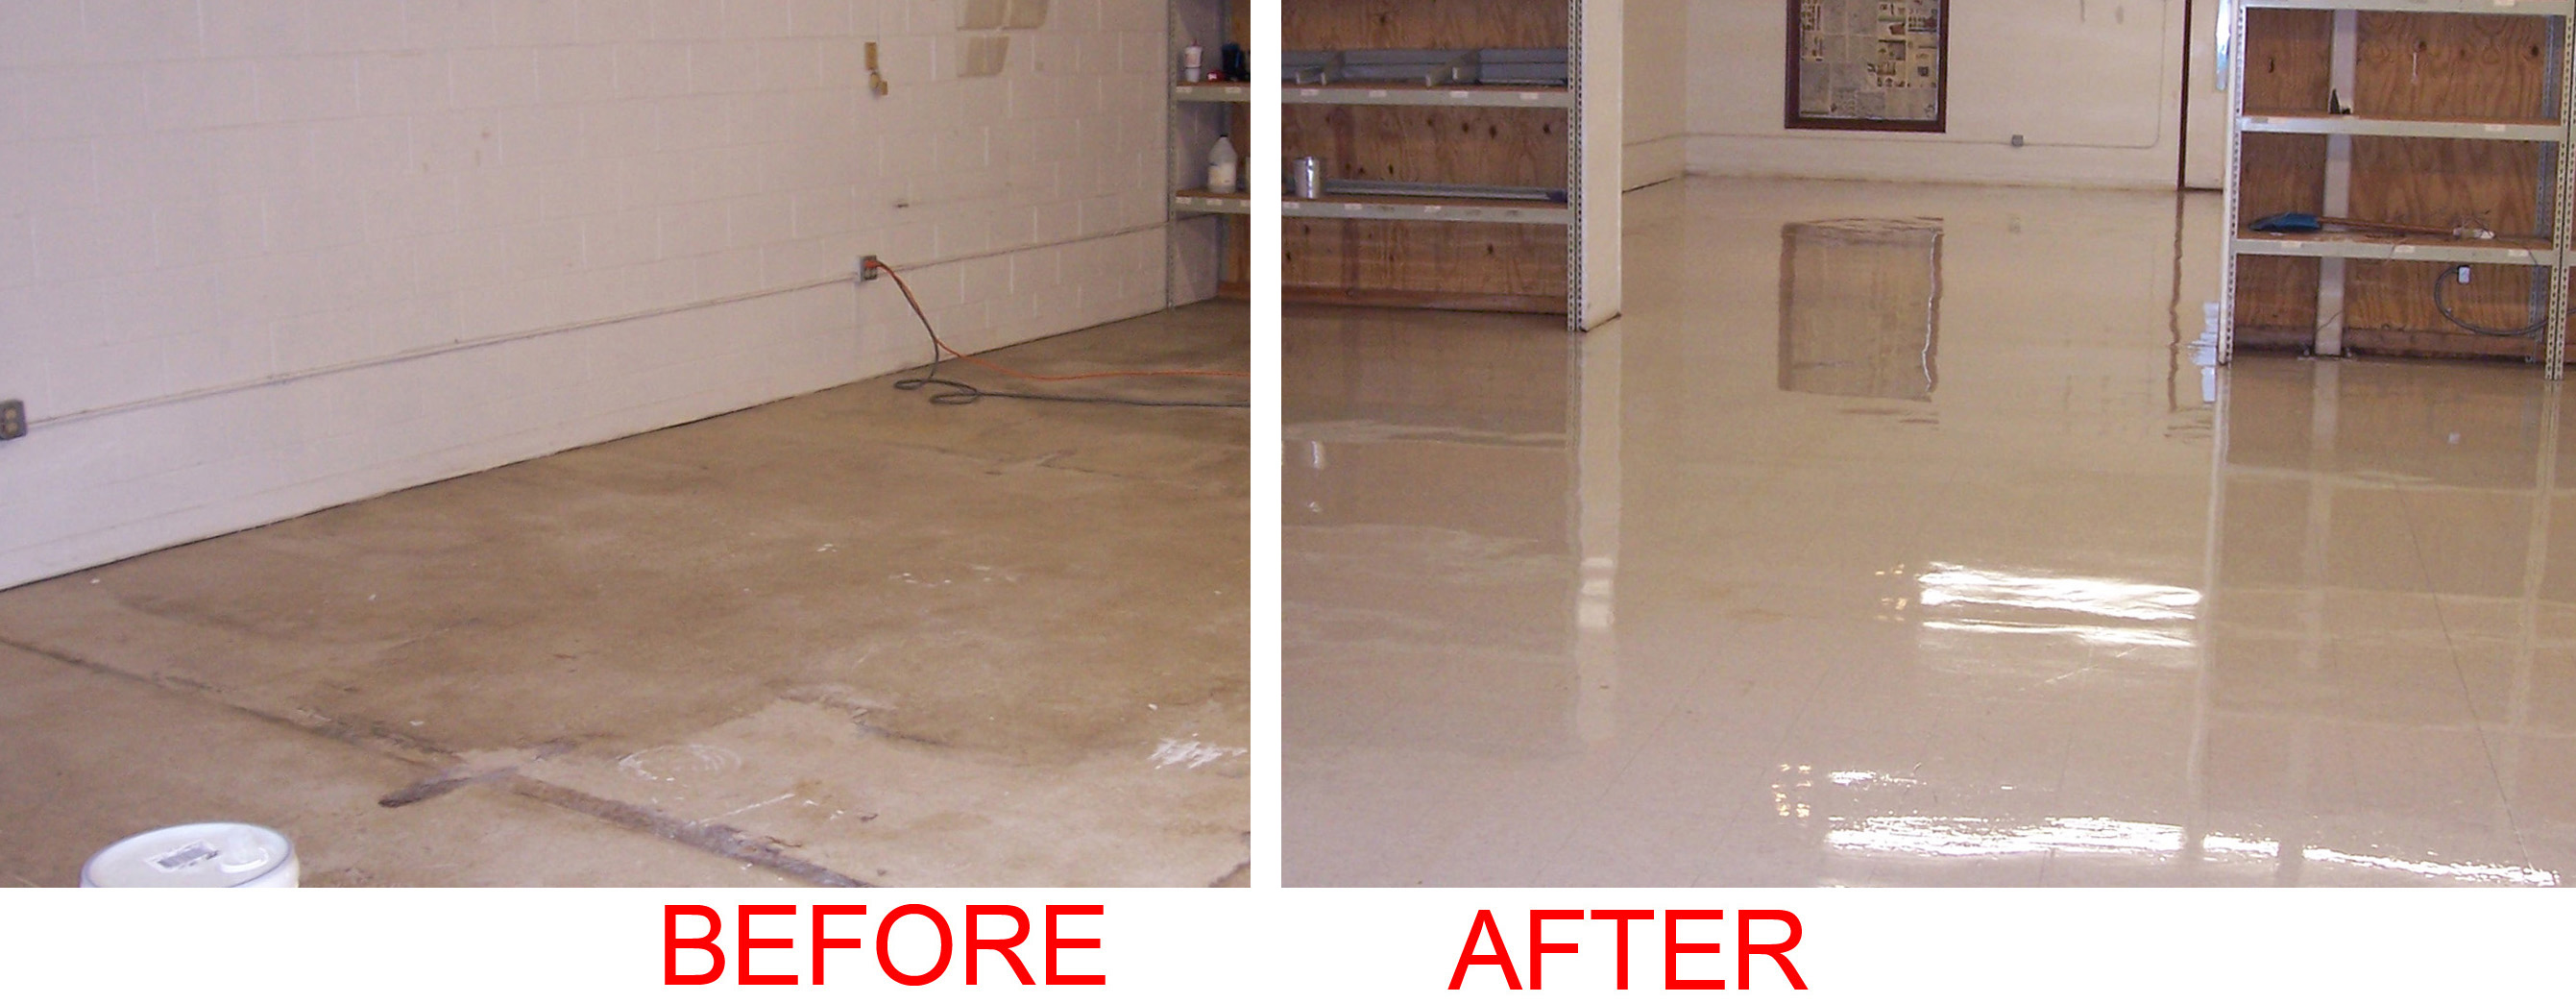 VCT BEFORE & AFTER